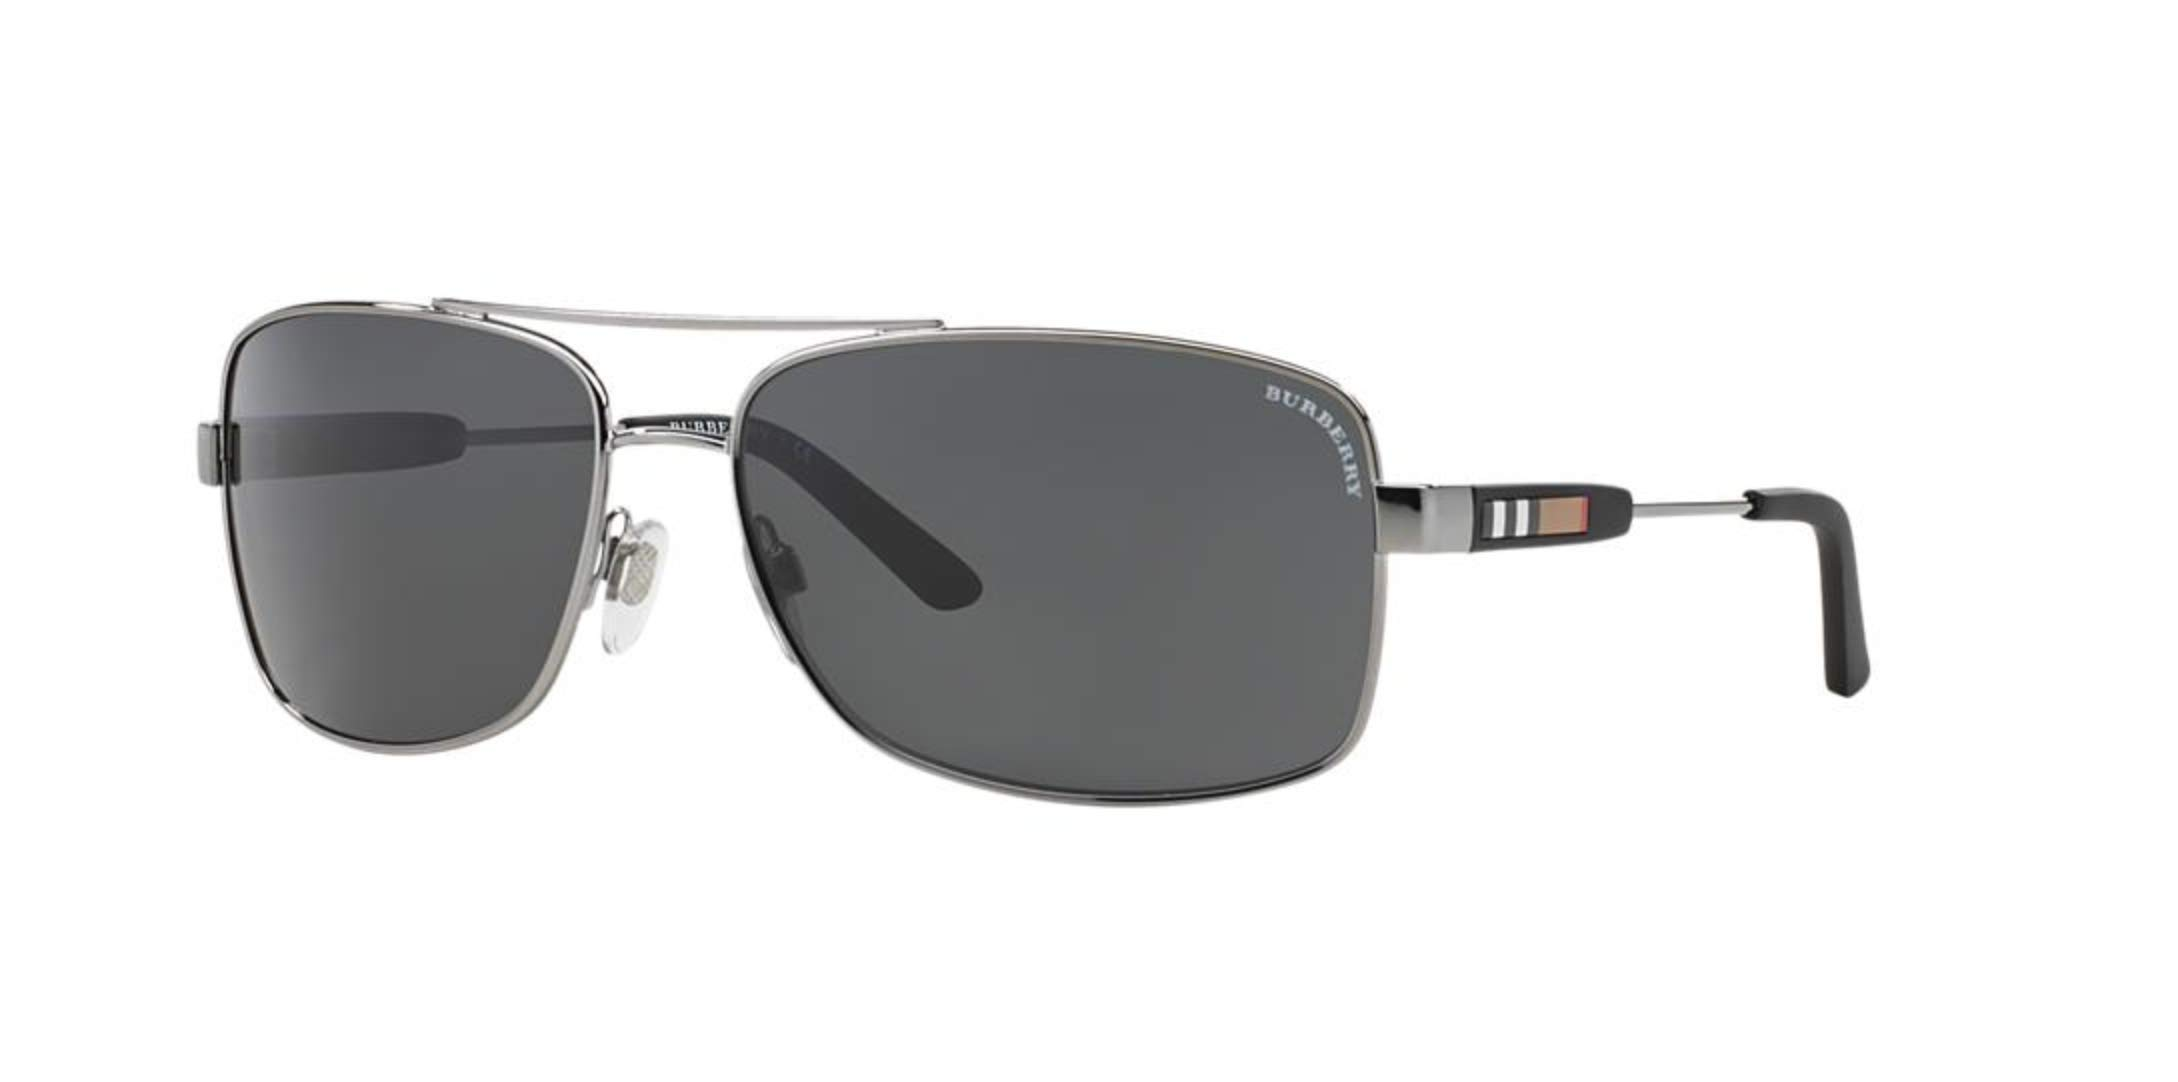 81e04b31cba0 Burberry Sunglasses Men Top Deals & Lowest Price | SuperOffers.com